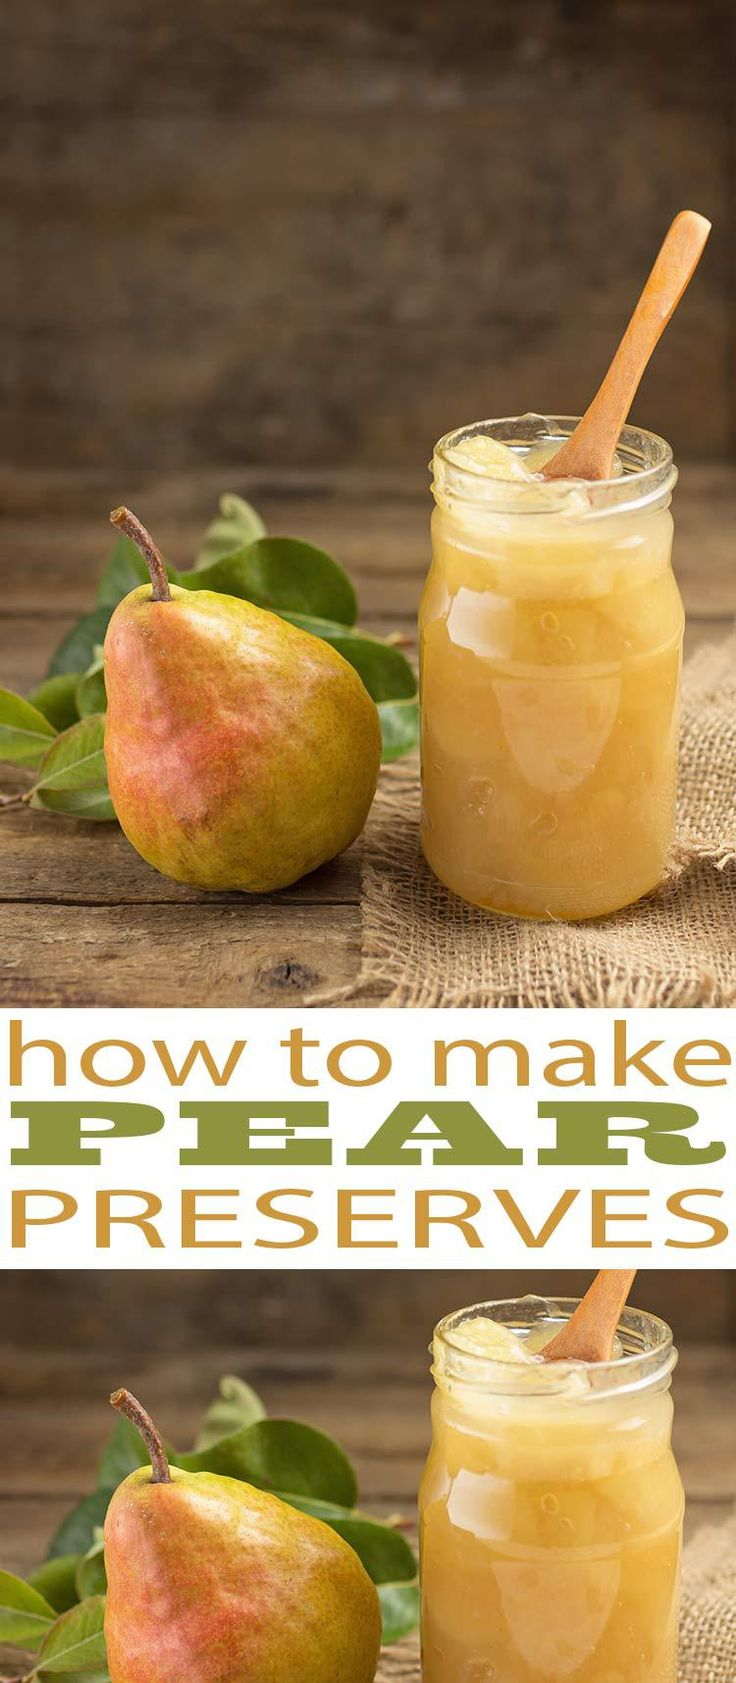 Learn how to make Pear Preserves so you can enjoy them all year long with a fresh pear flavor that is captured right in season. Pear Preserves are easy to make.